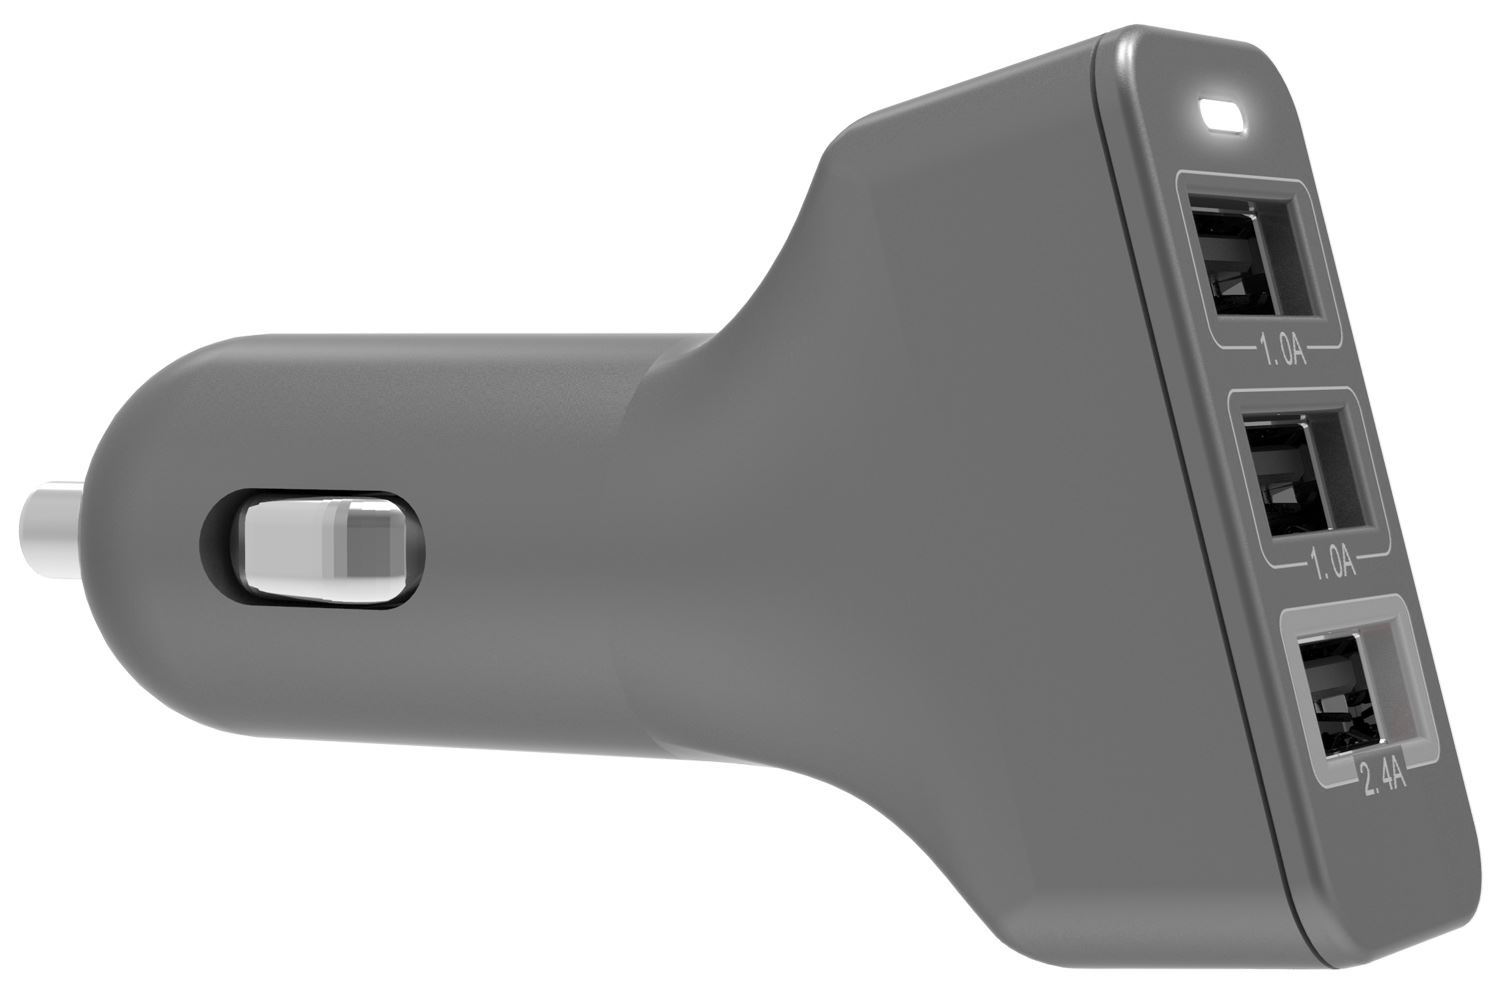 Picture of Kanex 3 port car charger